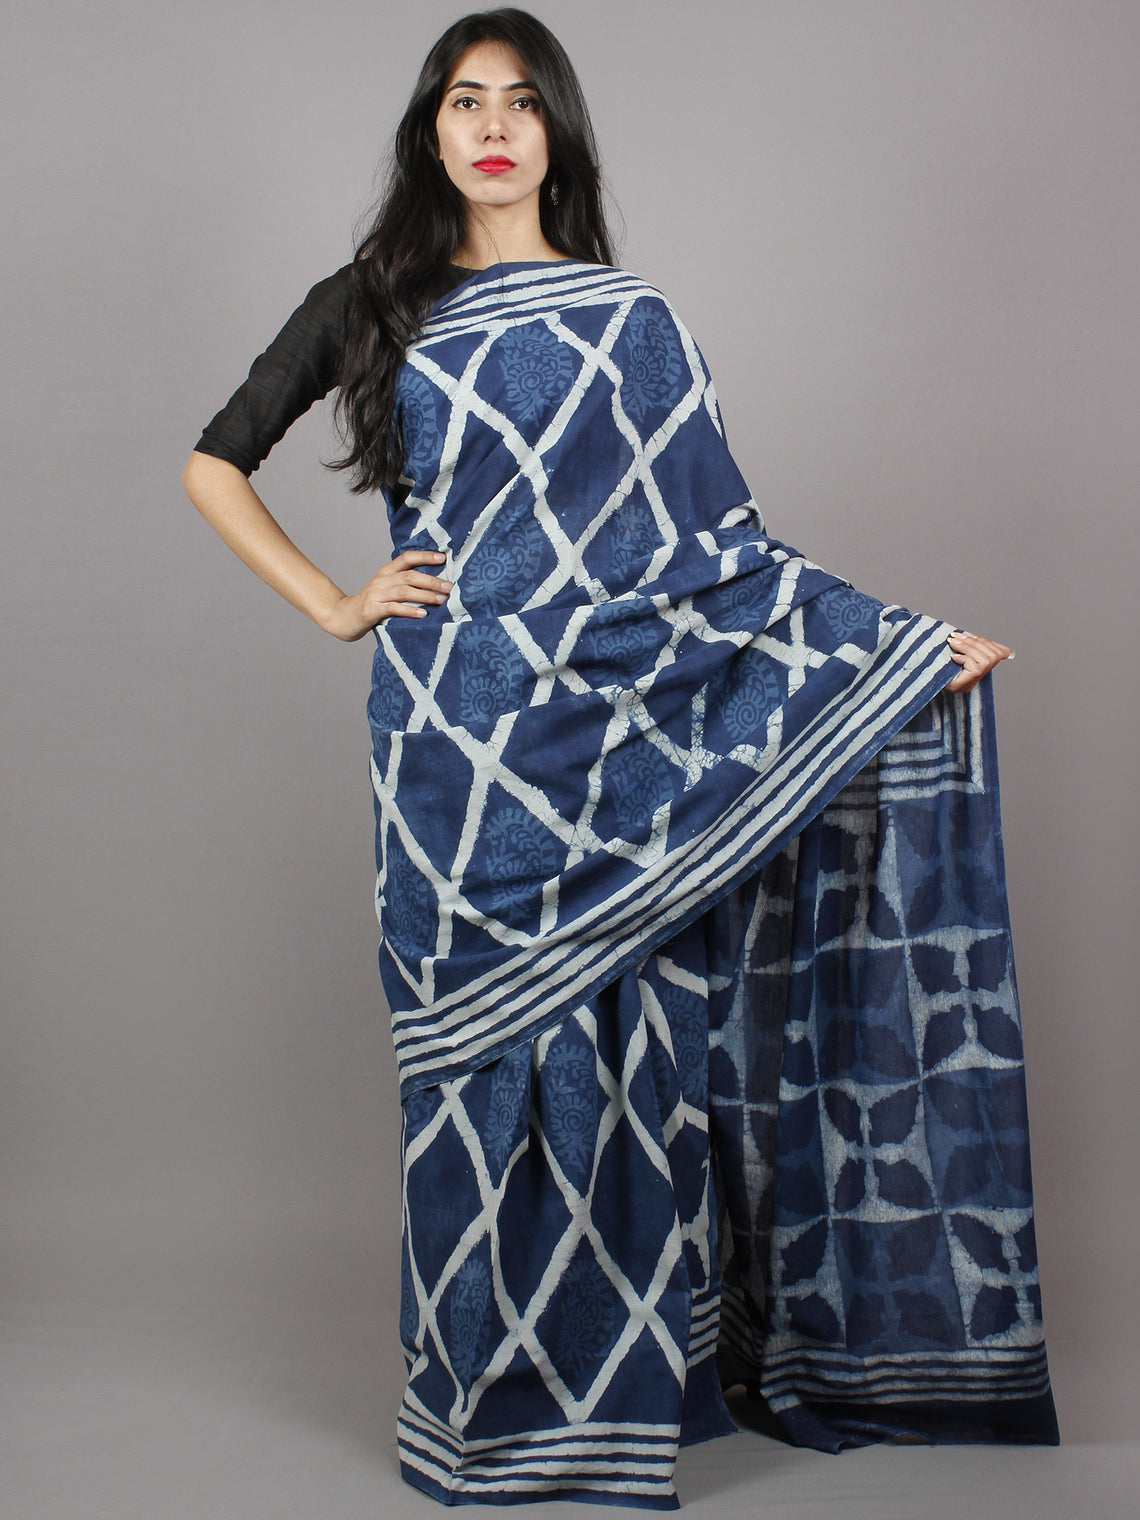 Indigo Blue White Hand Block Printed in Natural Colors Cotton Mul Saree - S031701337